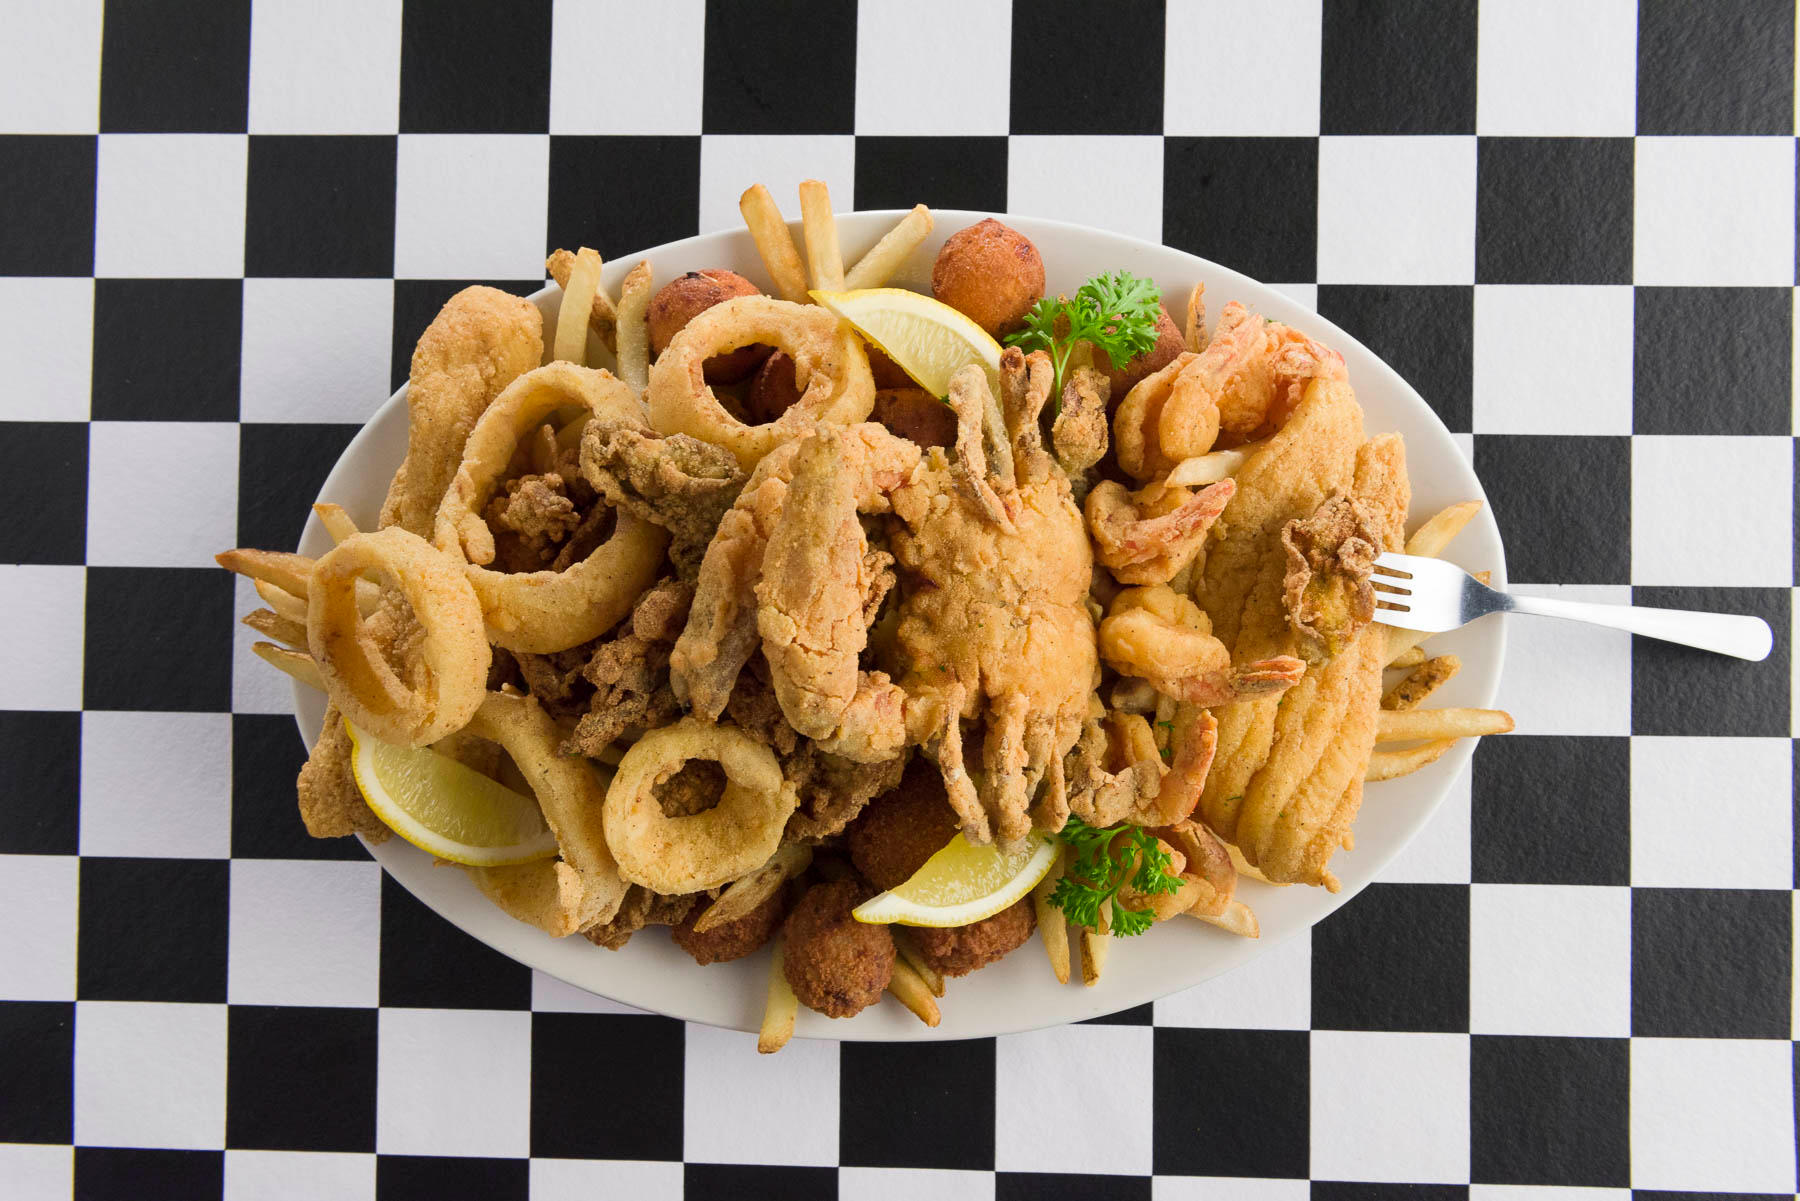 Acme Oyster House In Metairie La 70002